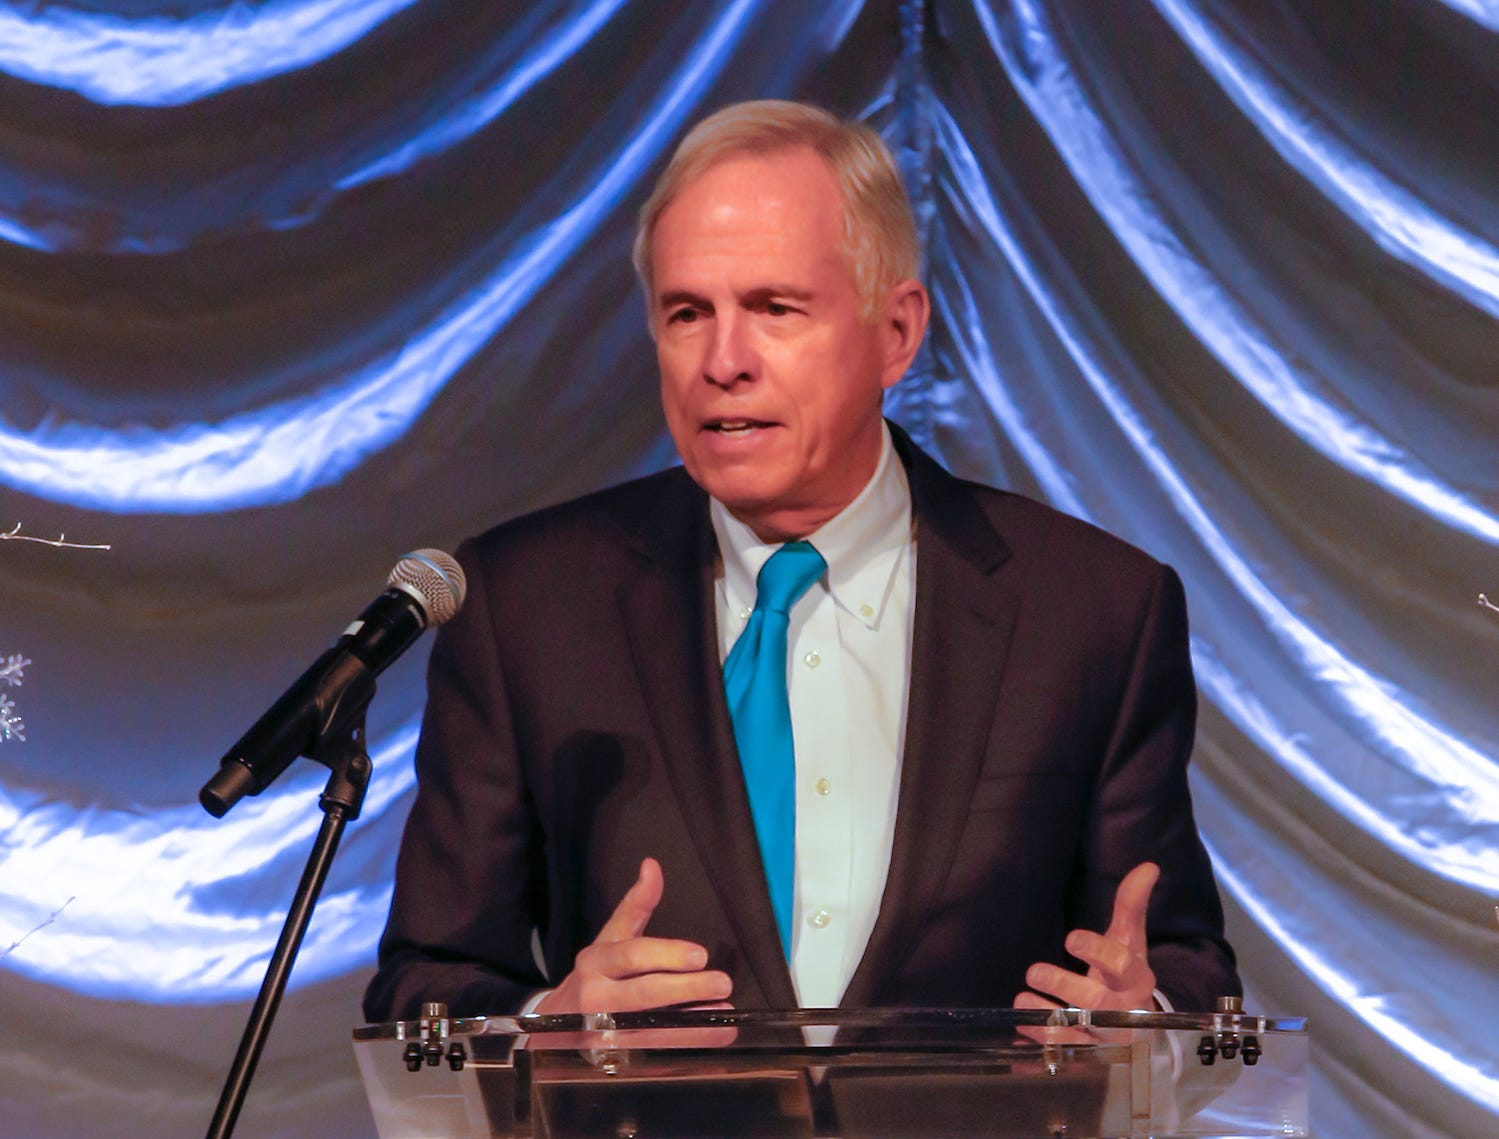 Former U.S. Rep. Bart Gordon speaks at the 2019 Excellence in Education Gala, hosted by the City Schools Foundation on Friday, Jan. 25, 2019 at Stones River Country Club in Murfreesboro.